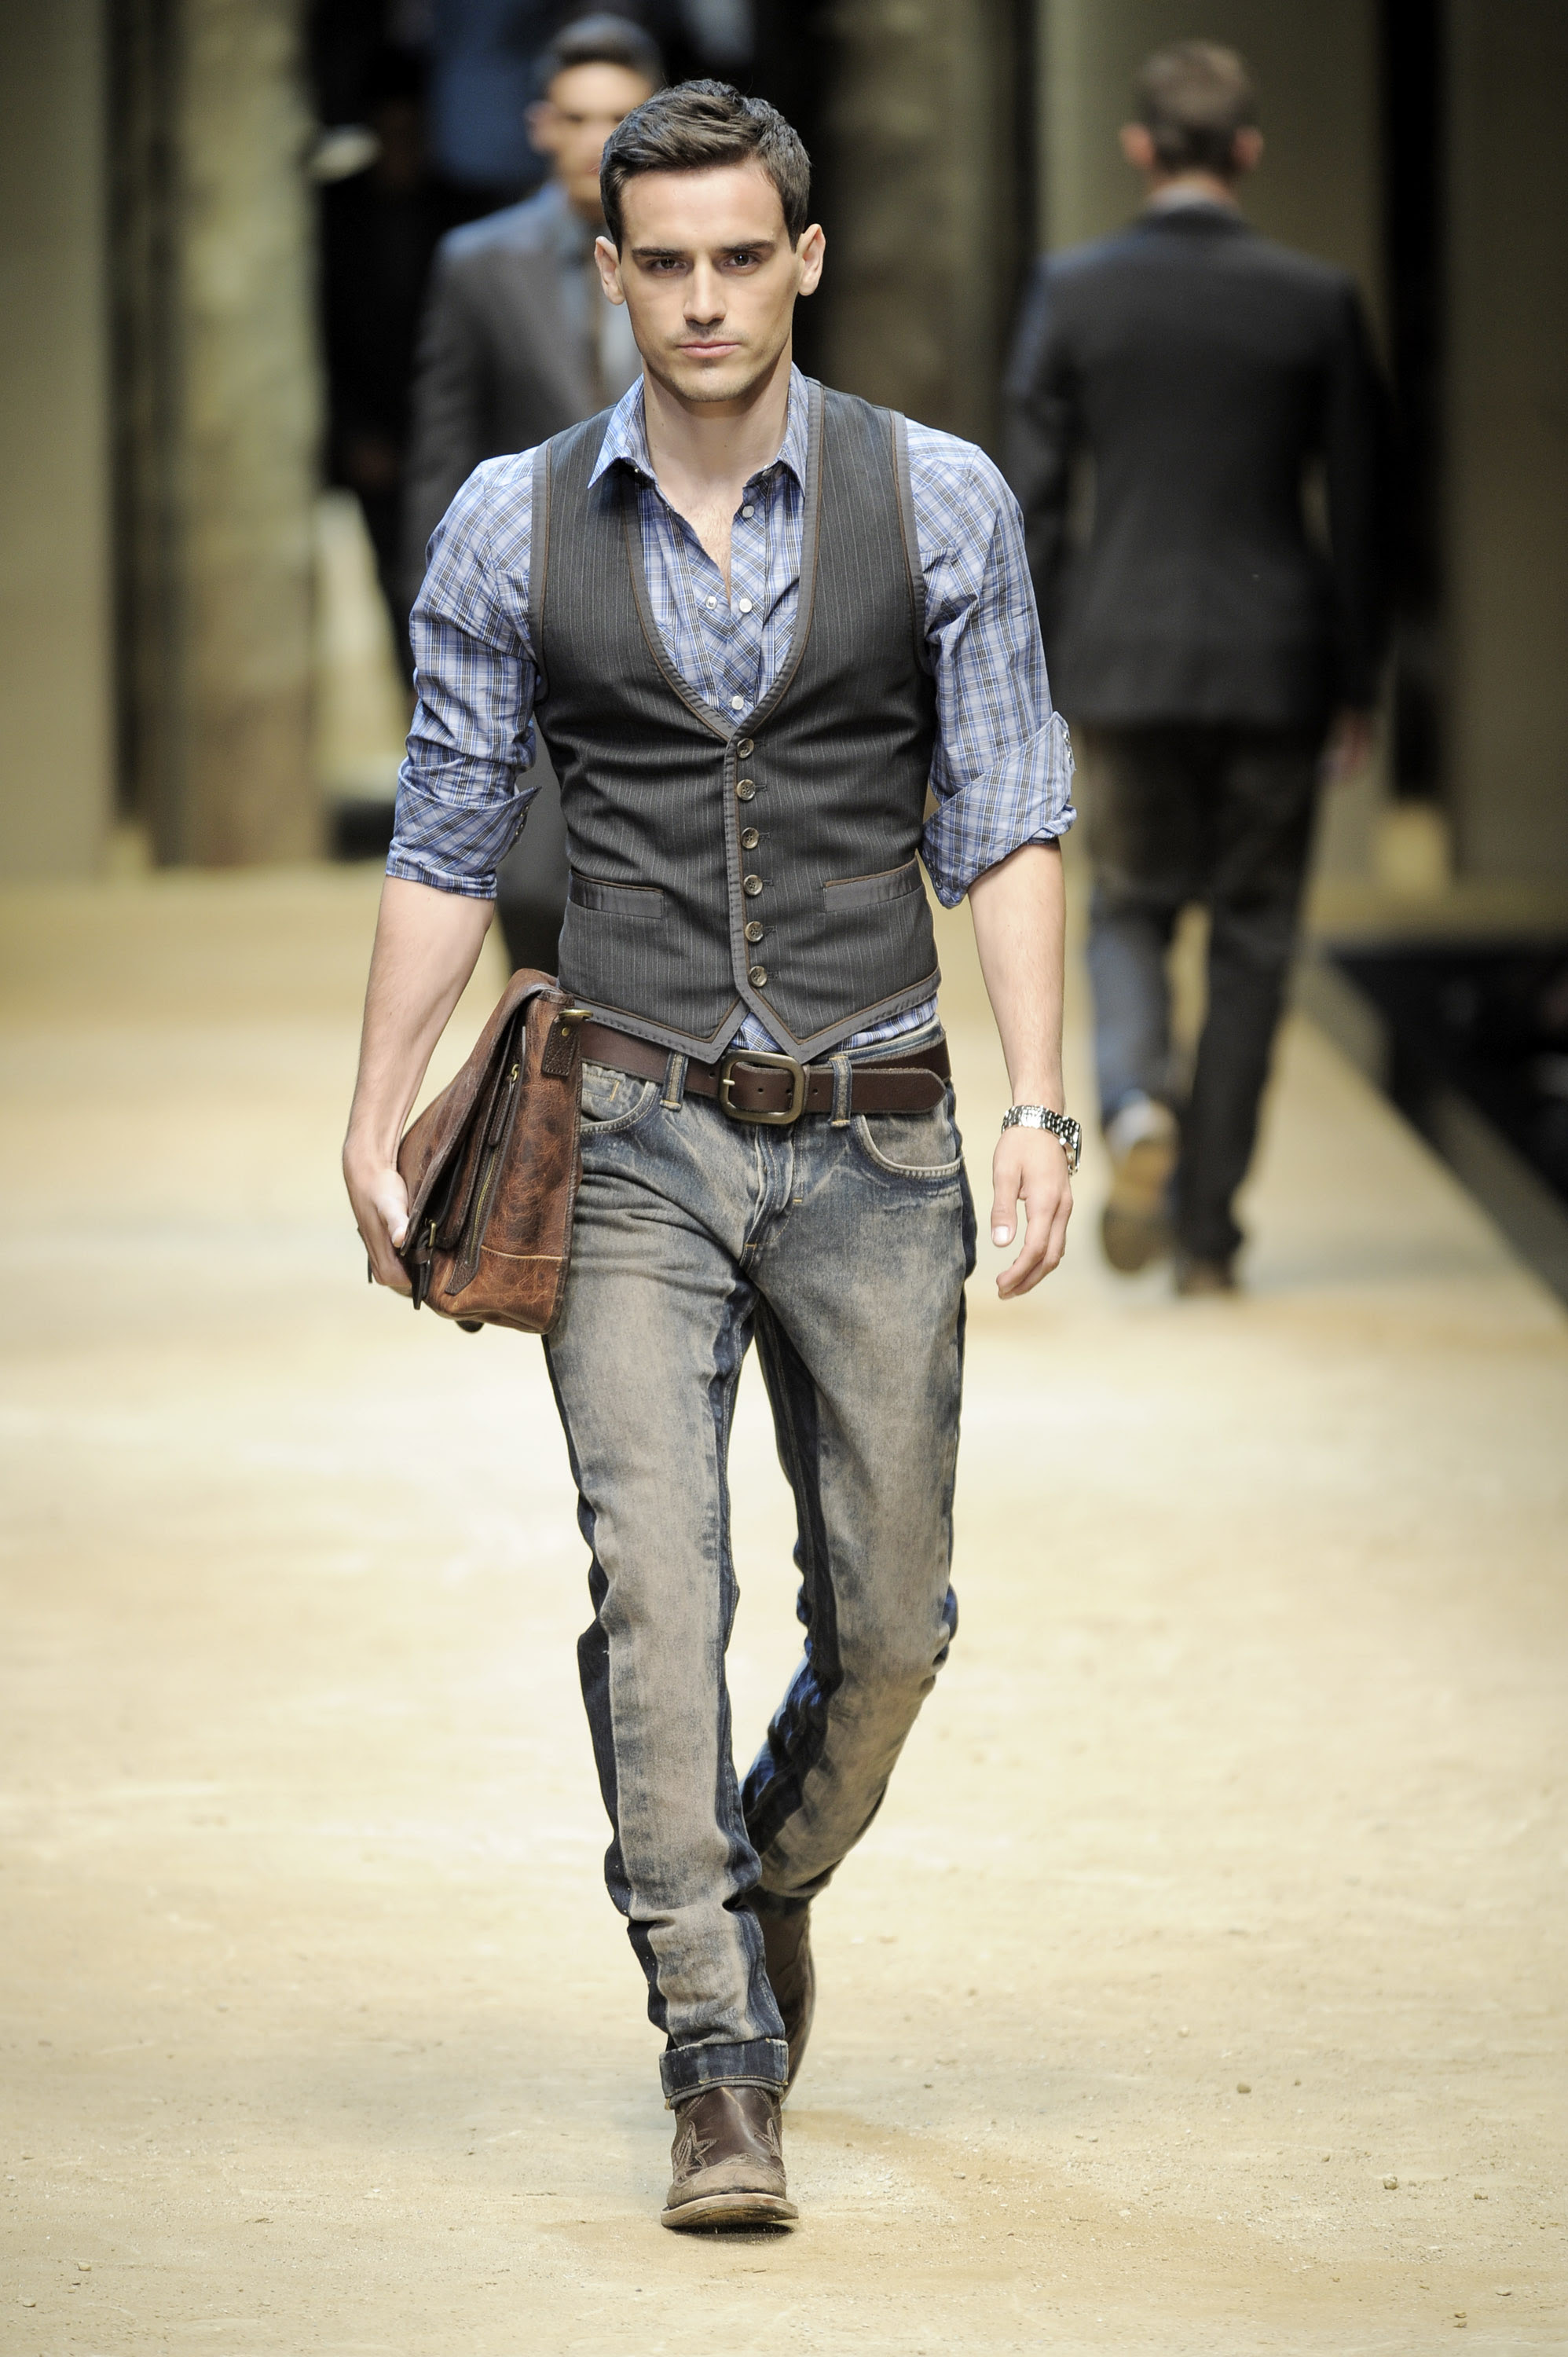 men's casual fashion  time for change  ohh my my